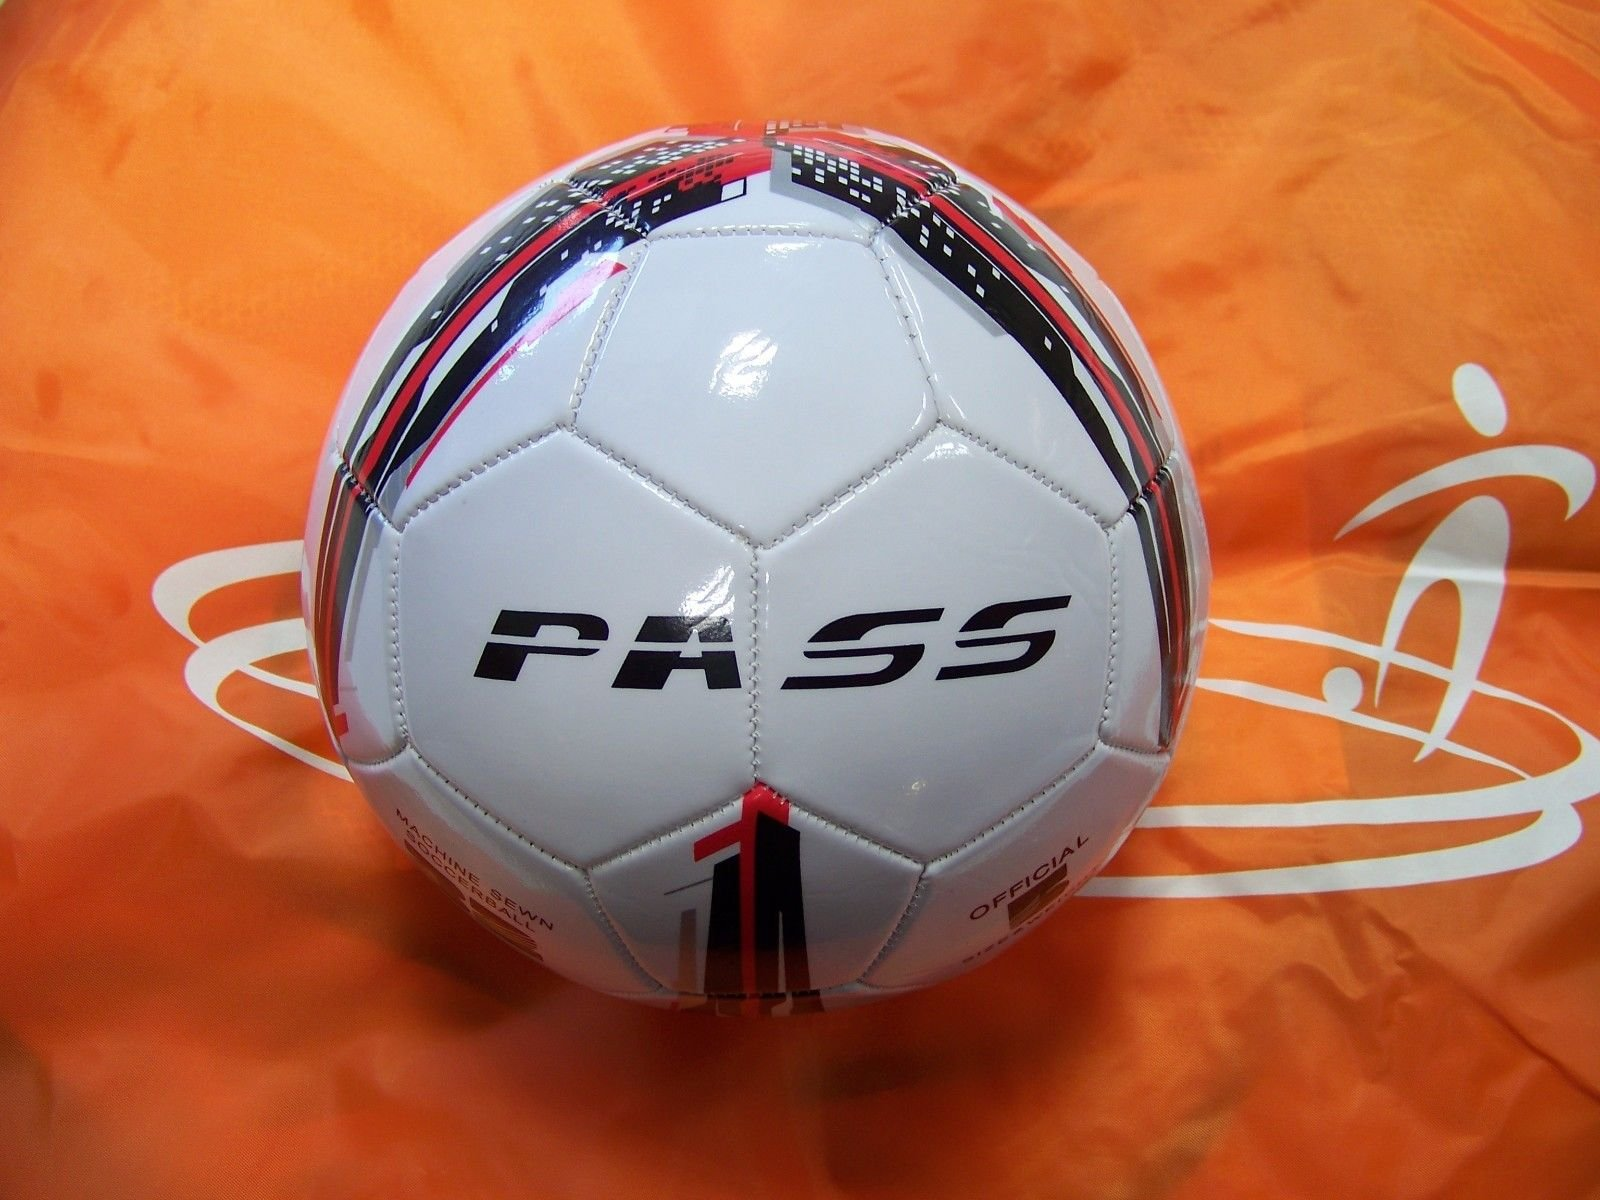 50 CT - Size 5, 32 Panel Machine Sewn Soccer Balls. Official Sizes & Weight. COMES WITH FREE 6'' PUMP! (Red, Black & Grey)